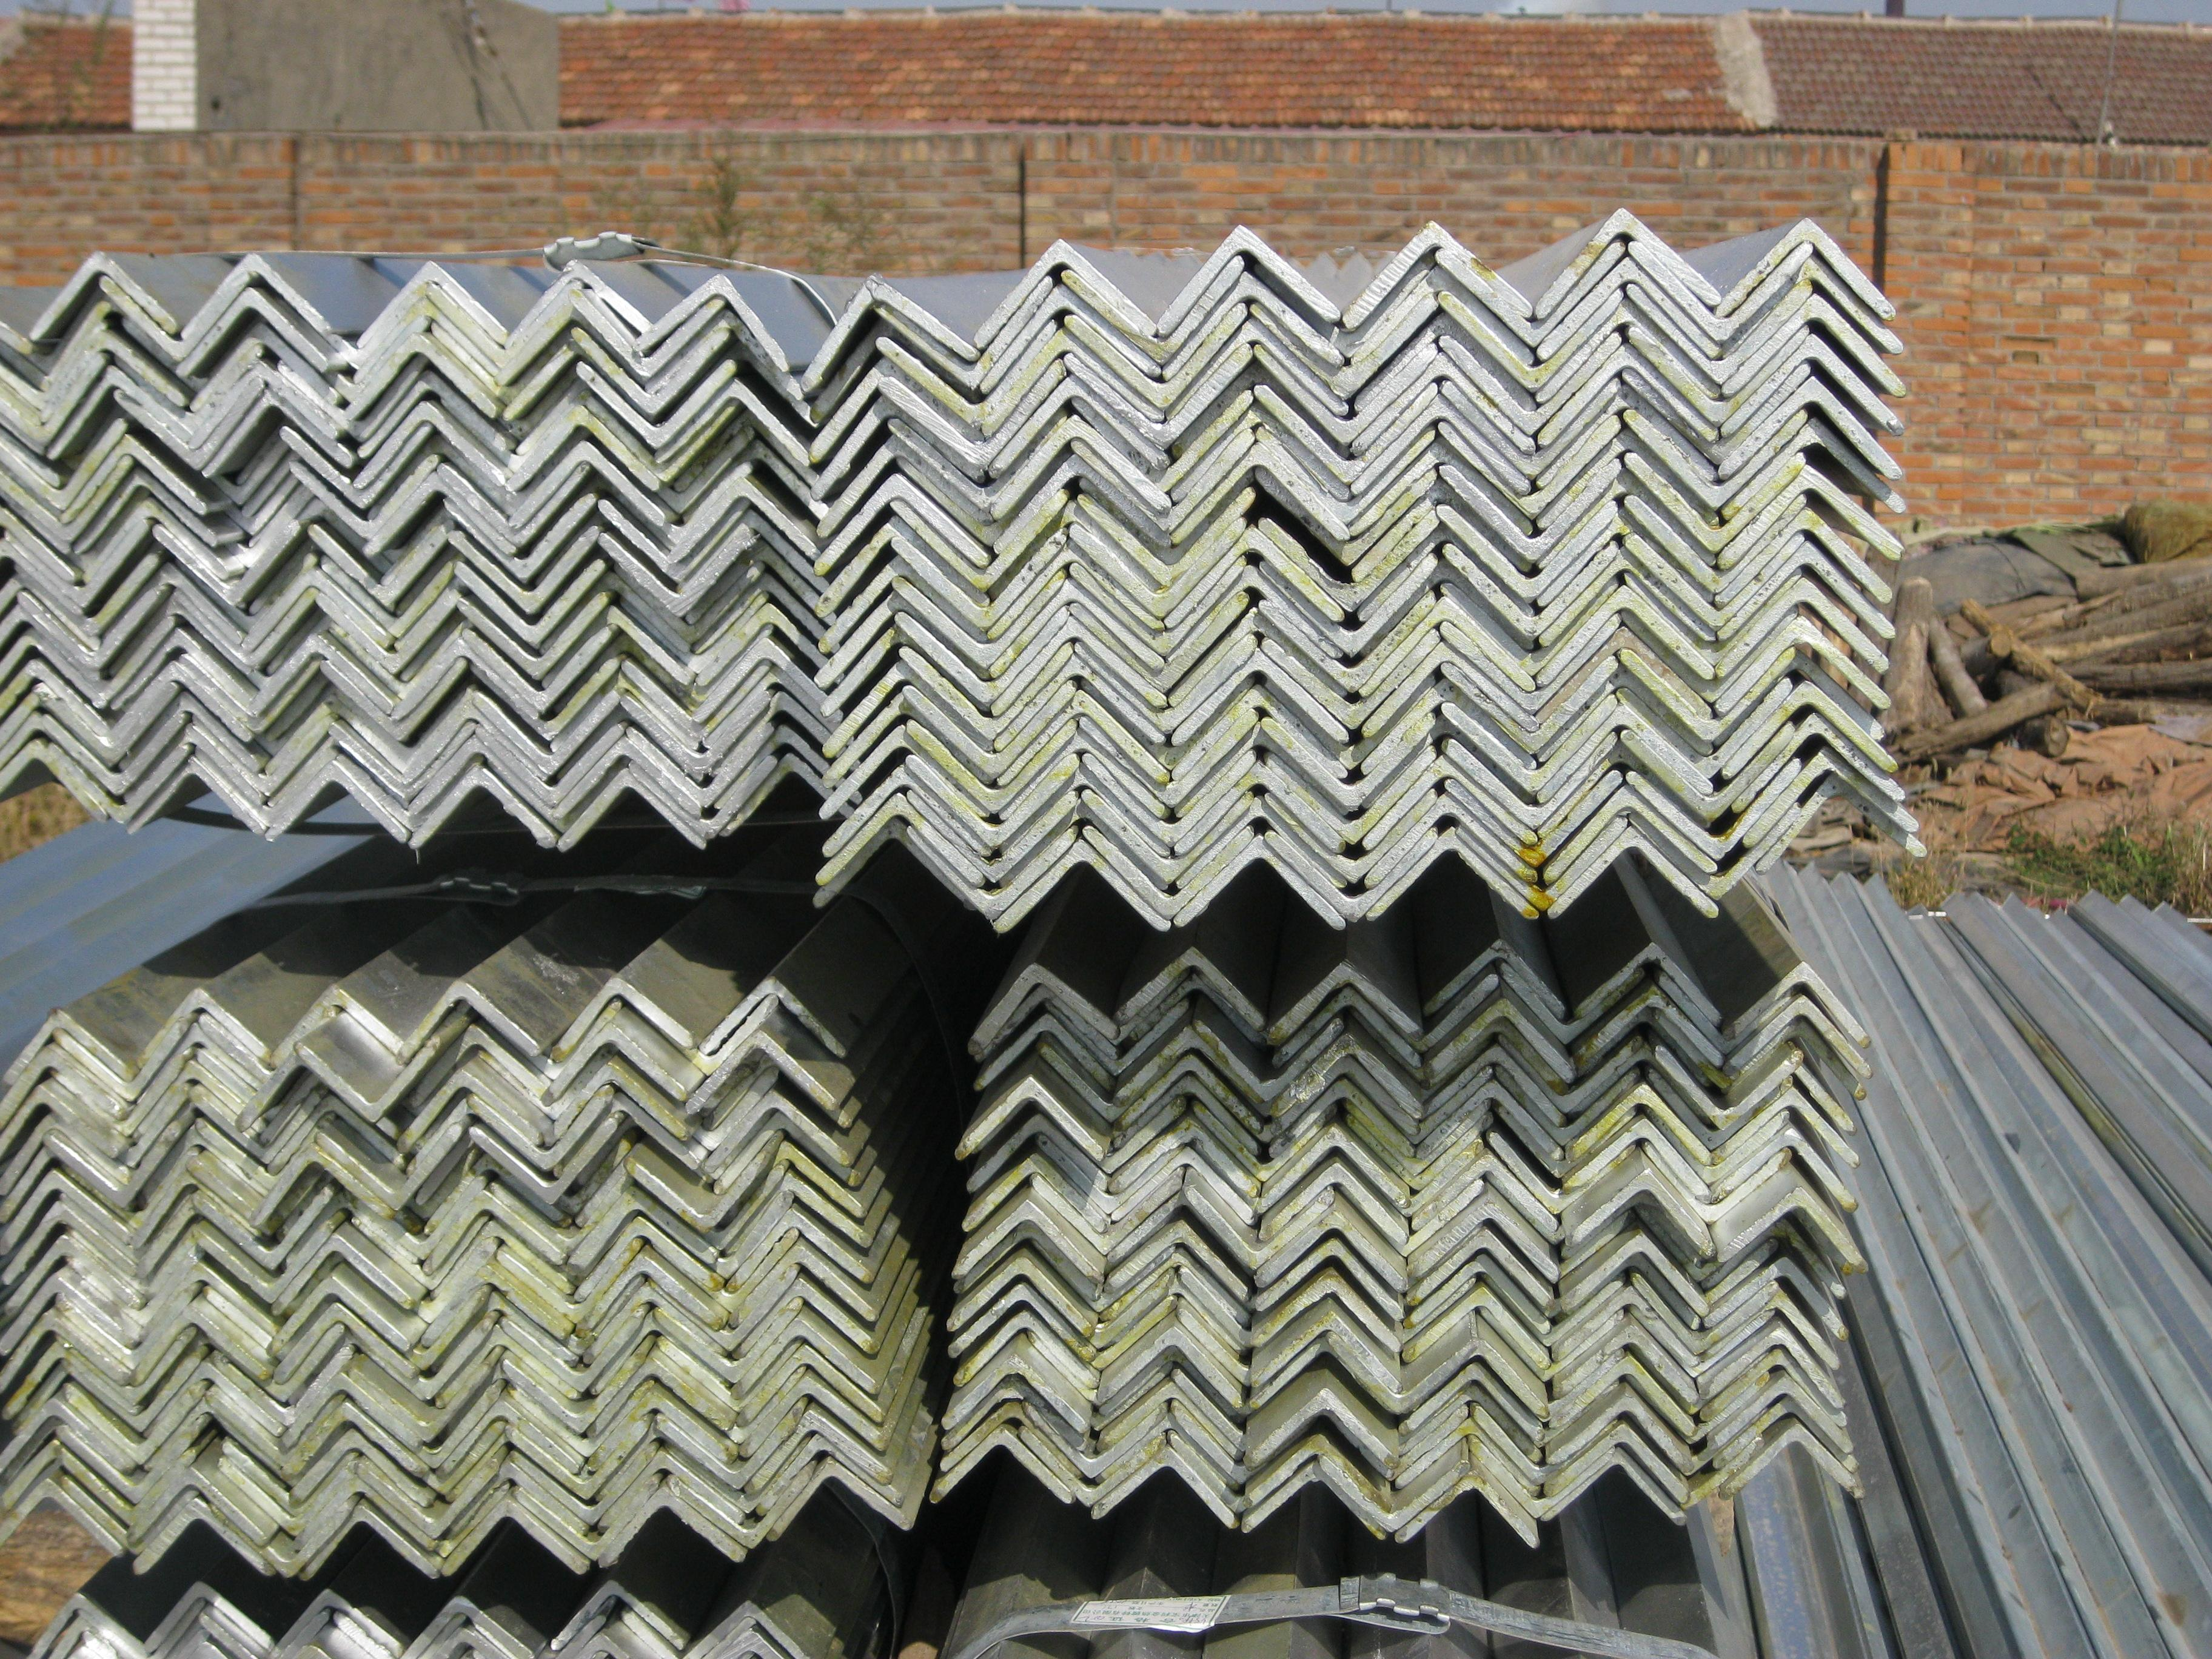 Hot-dipped galvanized steel angles